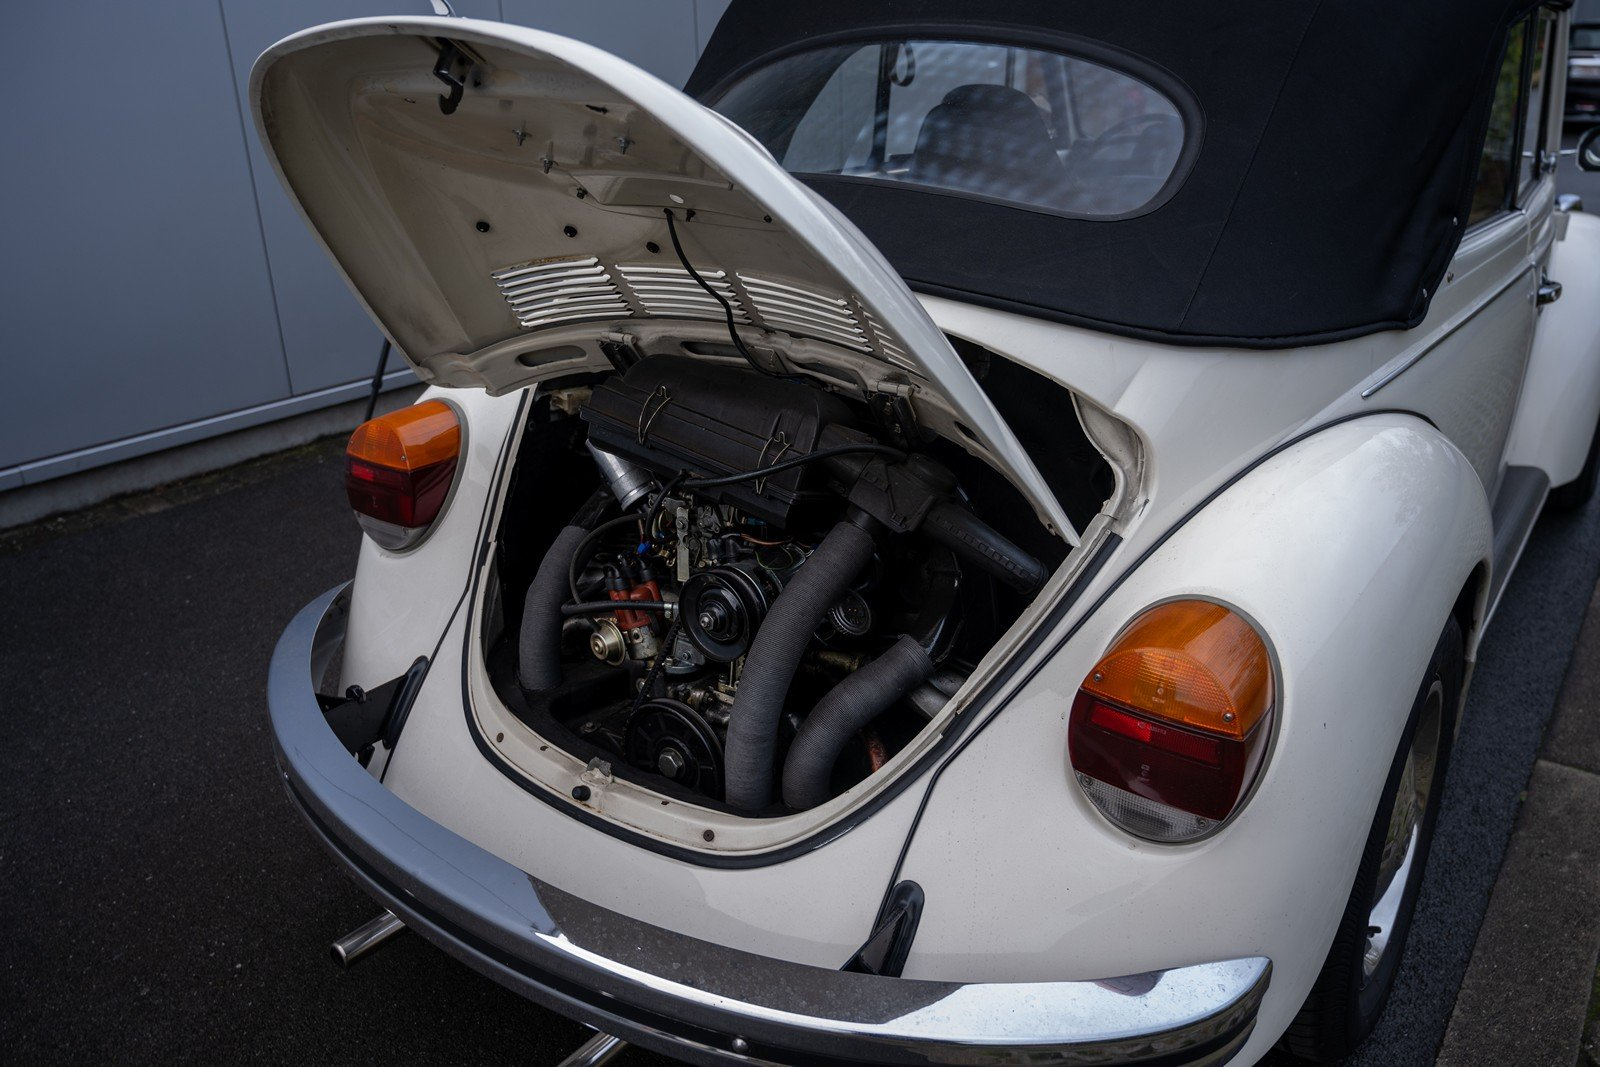 1973 Volkswagen Beetle Type 1303 Cabriolet For Sale (picture 38 of 39)